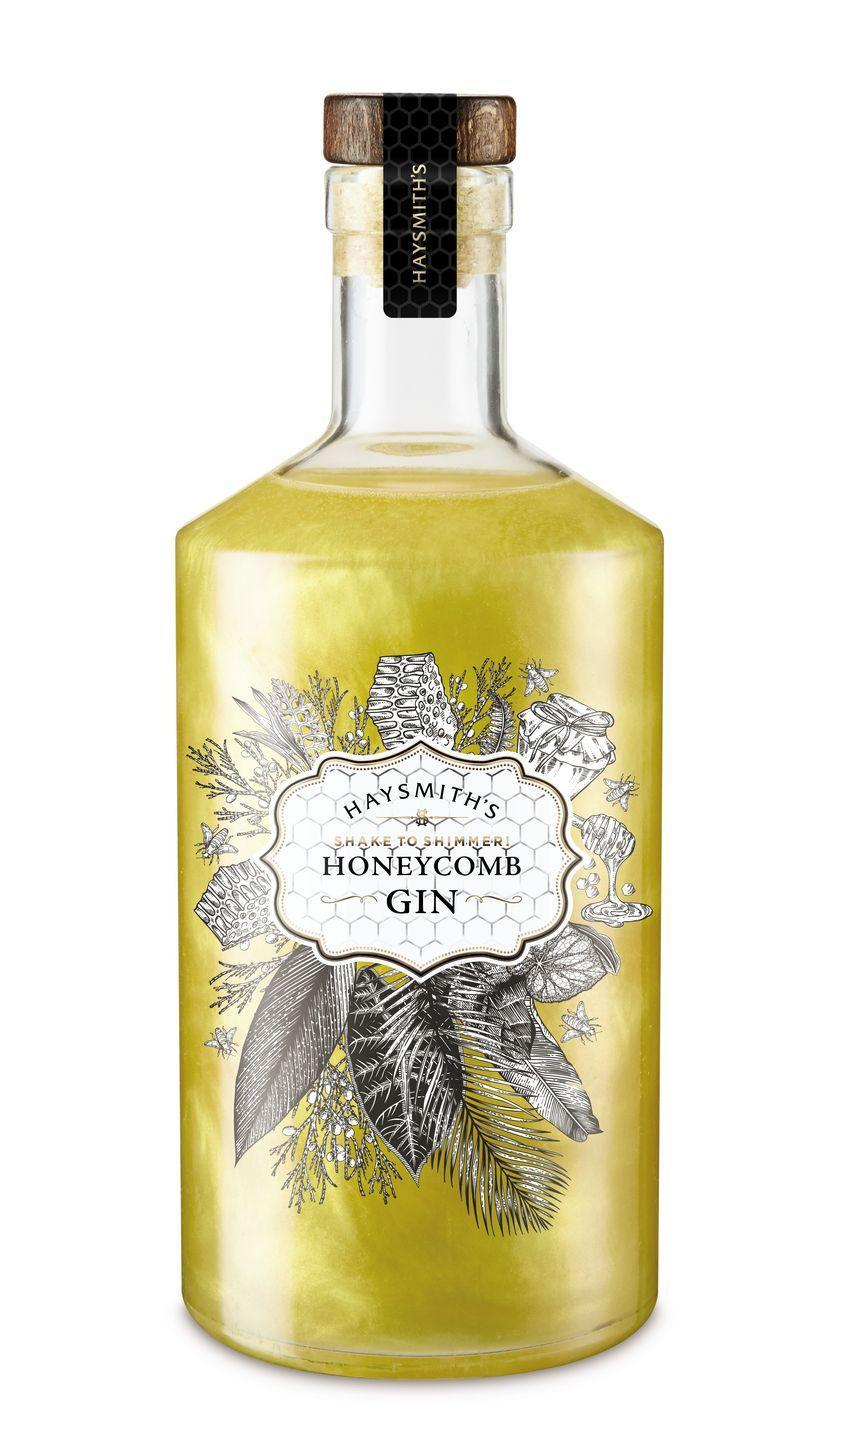 <p>As bittersweet gins continue to emerge in the market, the Haysmith's Honeycomb gin offers a sweet honeycomb taste with juniper botanicals to create a flavour explosion. Give it a shake to reveal the gold shimmer – perfect for Instagram!</p>